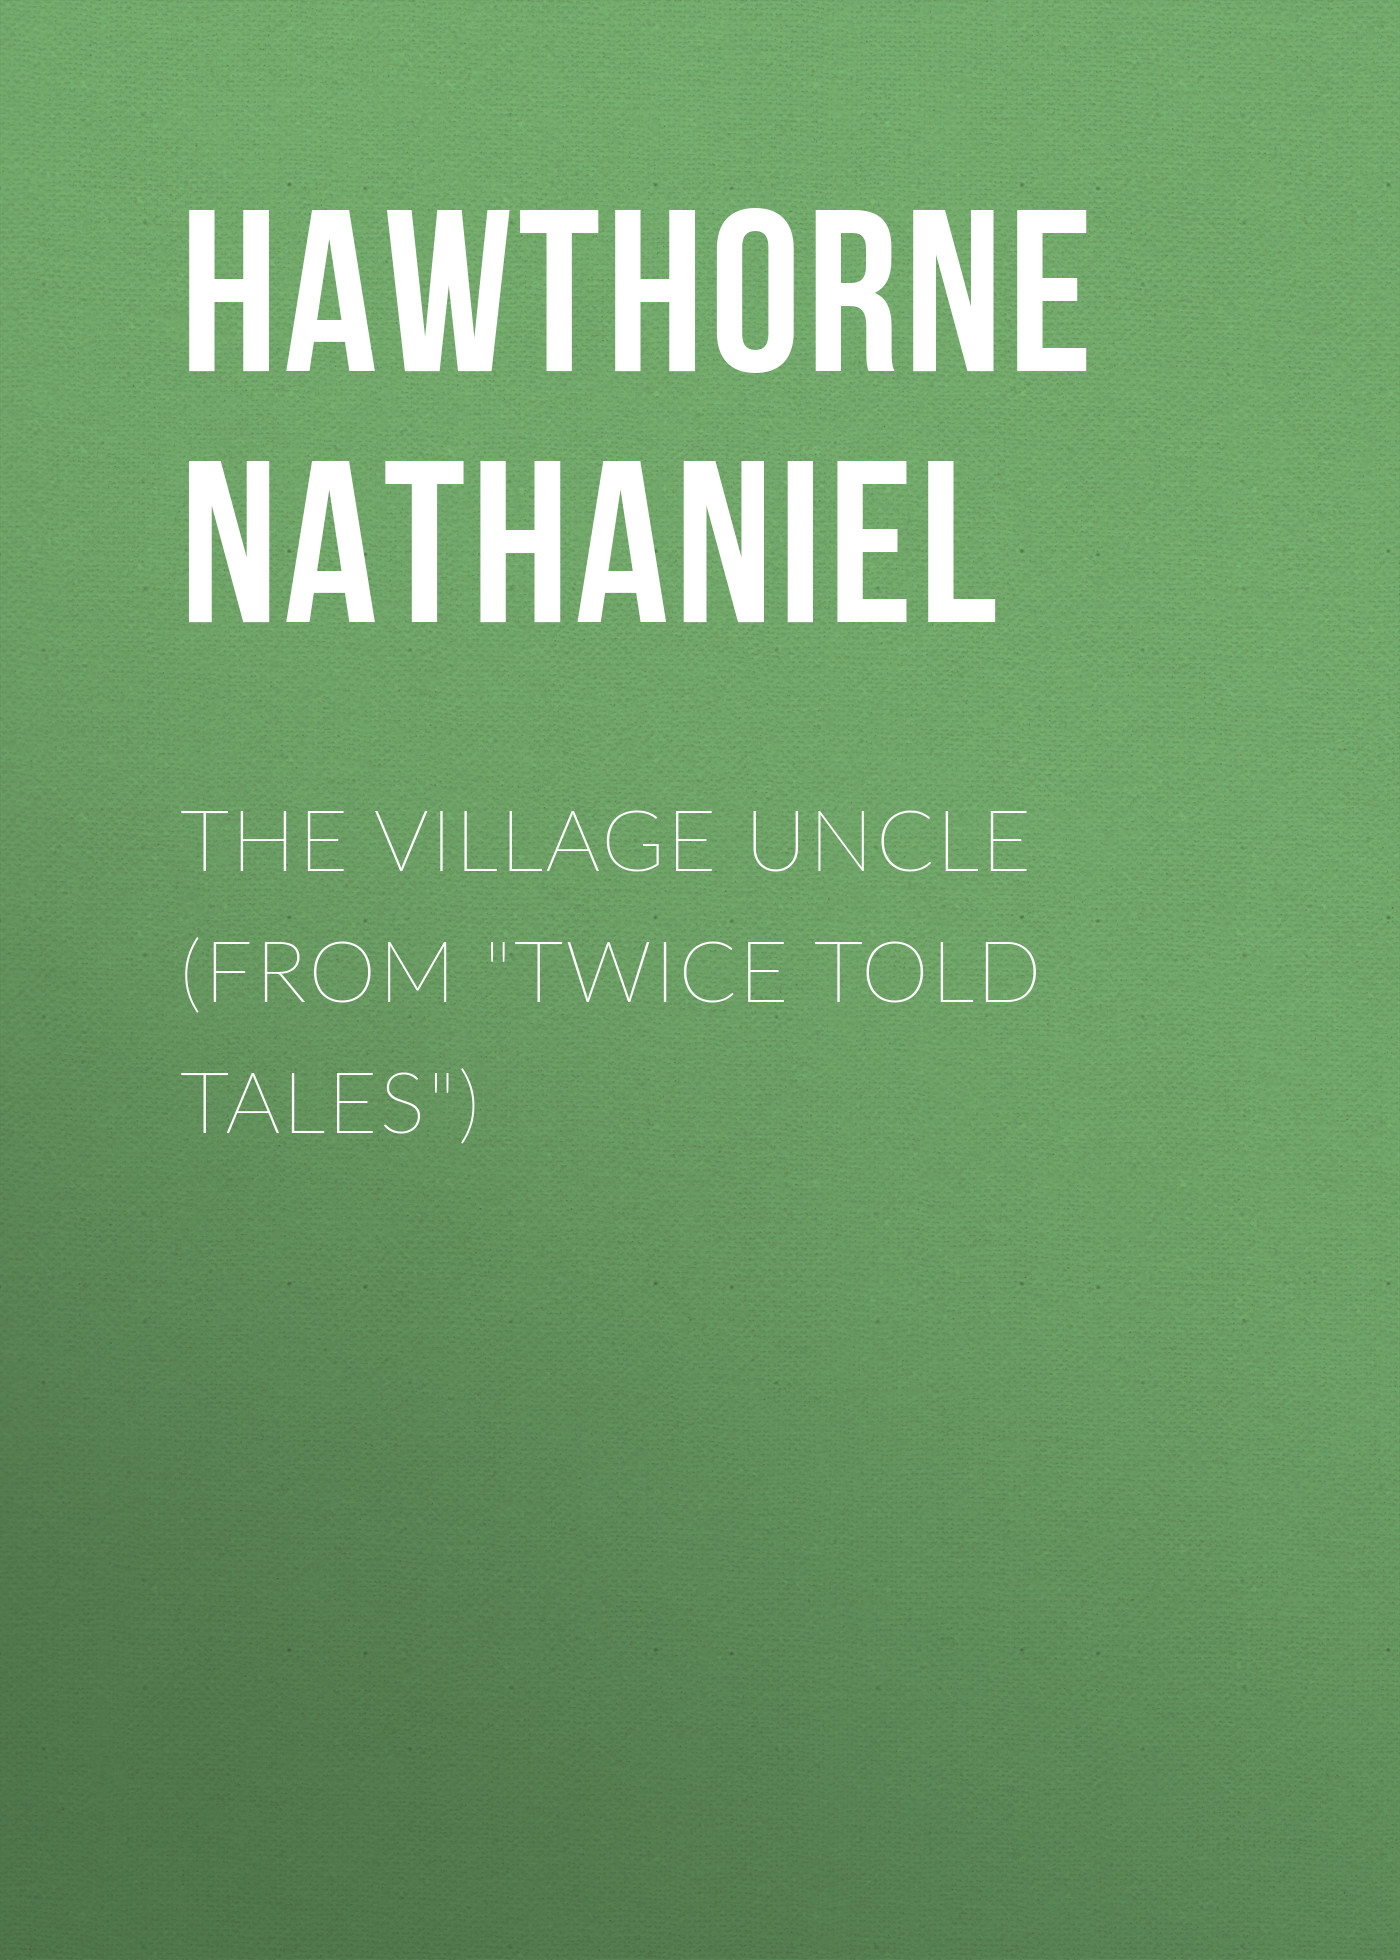 Hawthorne Nathaniel The Village Uncle (From